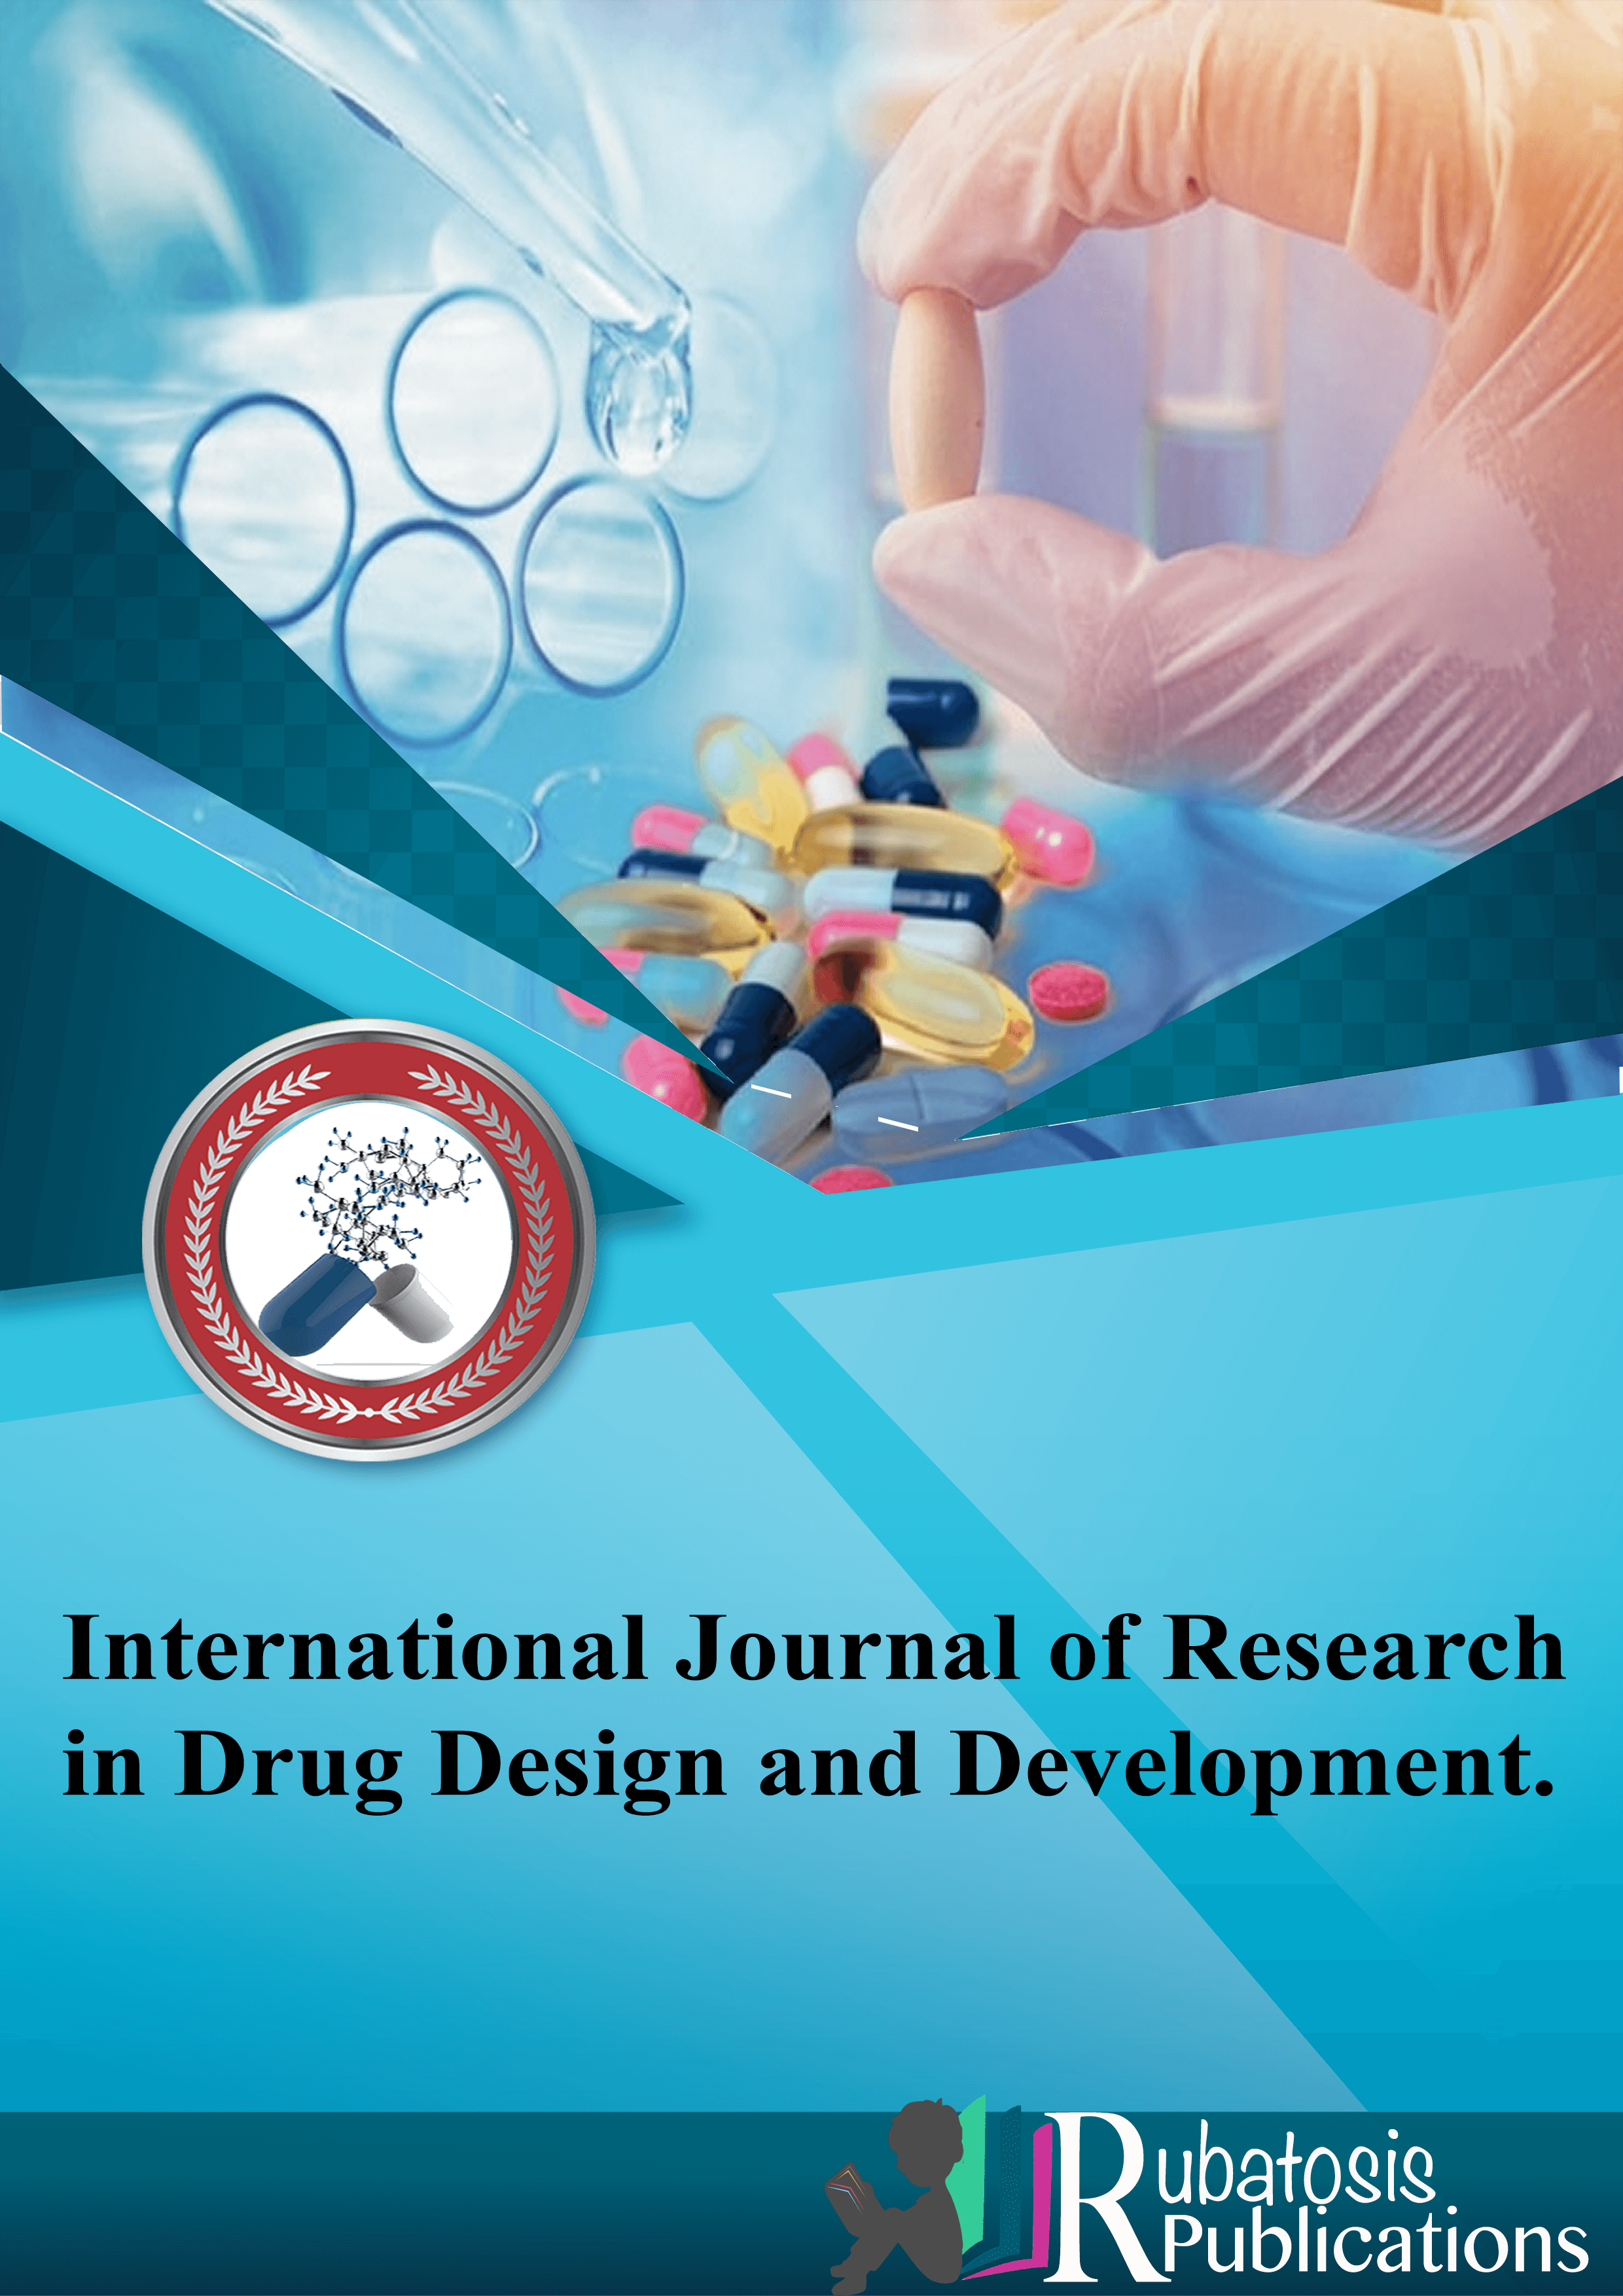 International Journal of Research in Drug Design and Development